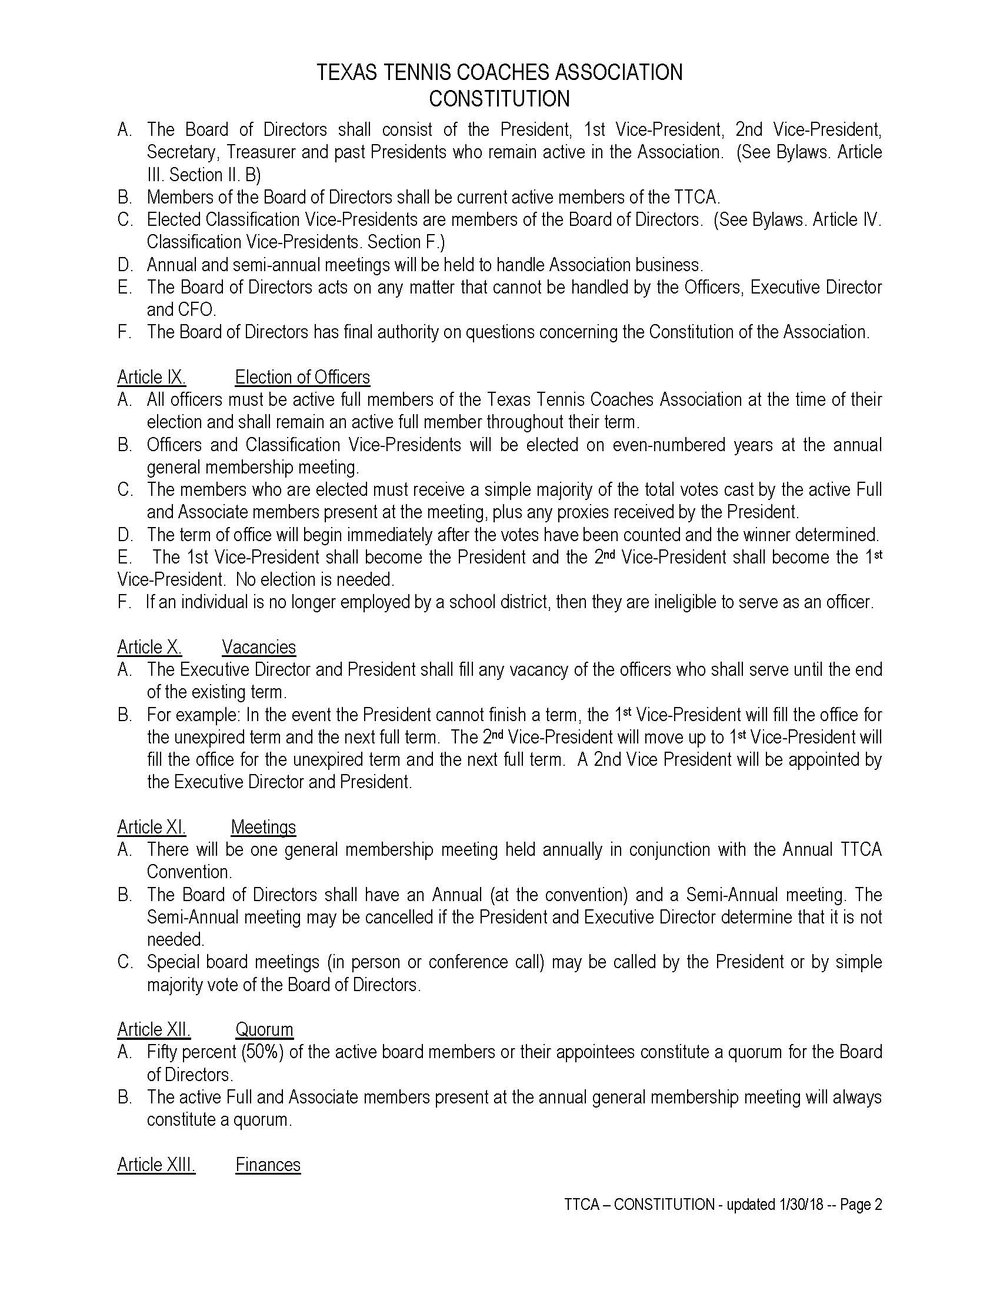 TTCA Constitution_Page_2.jpg